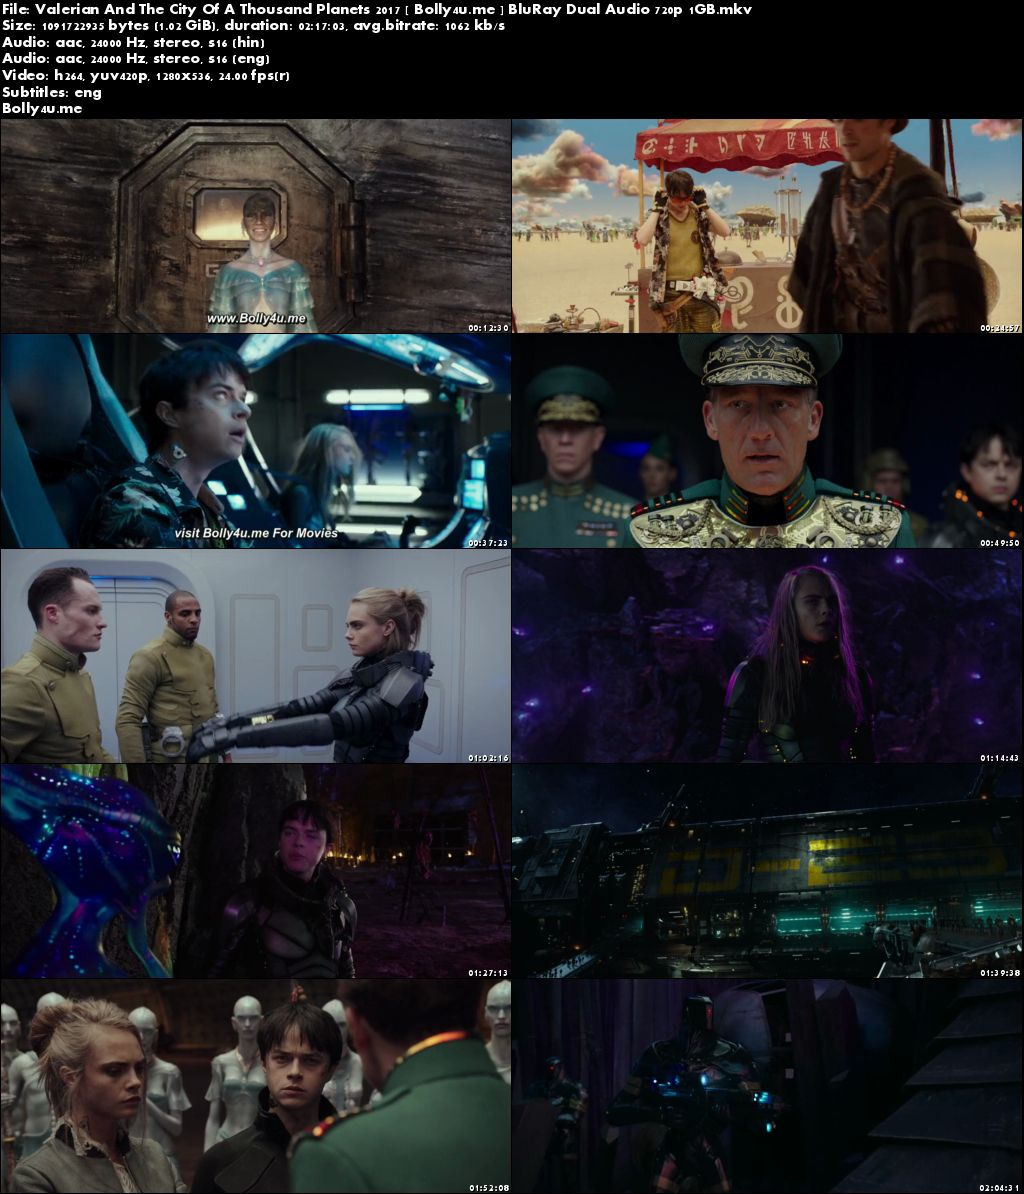 Valerian And The City Of A Thousand Planets 2017 BRRip 1GB Hindi Dual Audio 720p Download